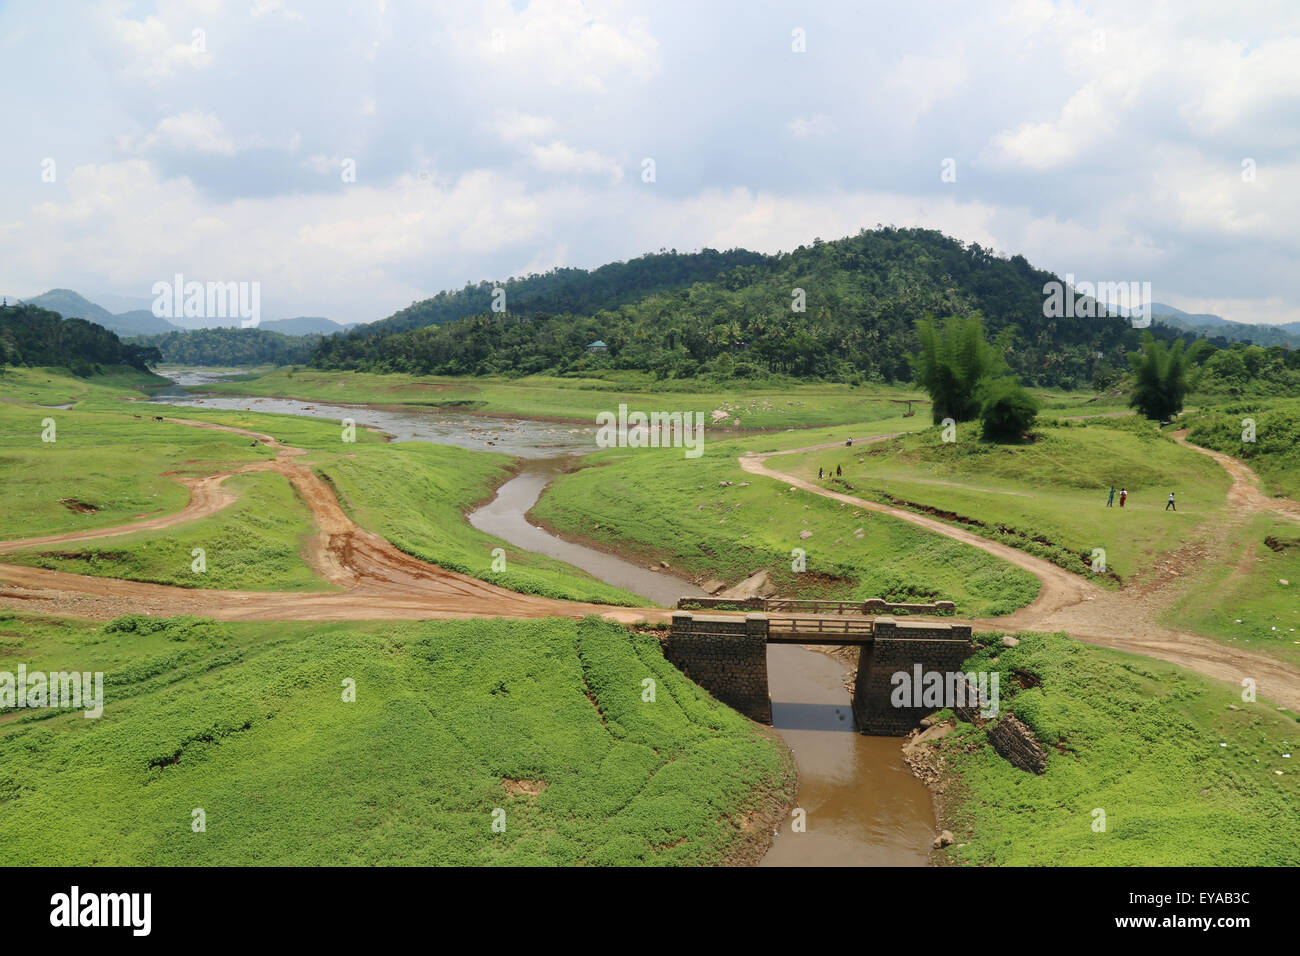 A view from the Ayappancoil Hanging Bridge, near Kattappana; an awesome combination of stream, green meadows and - Stock Image